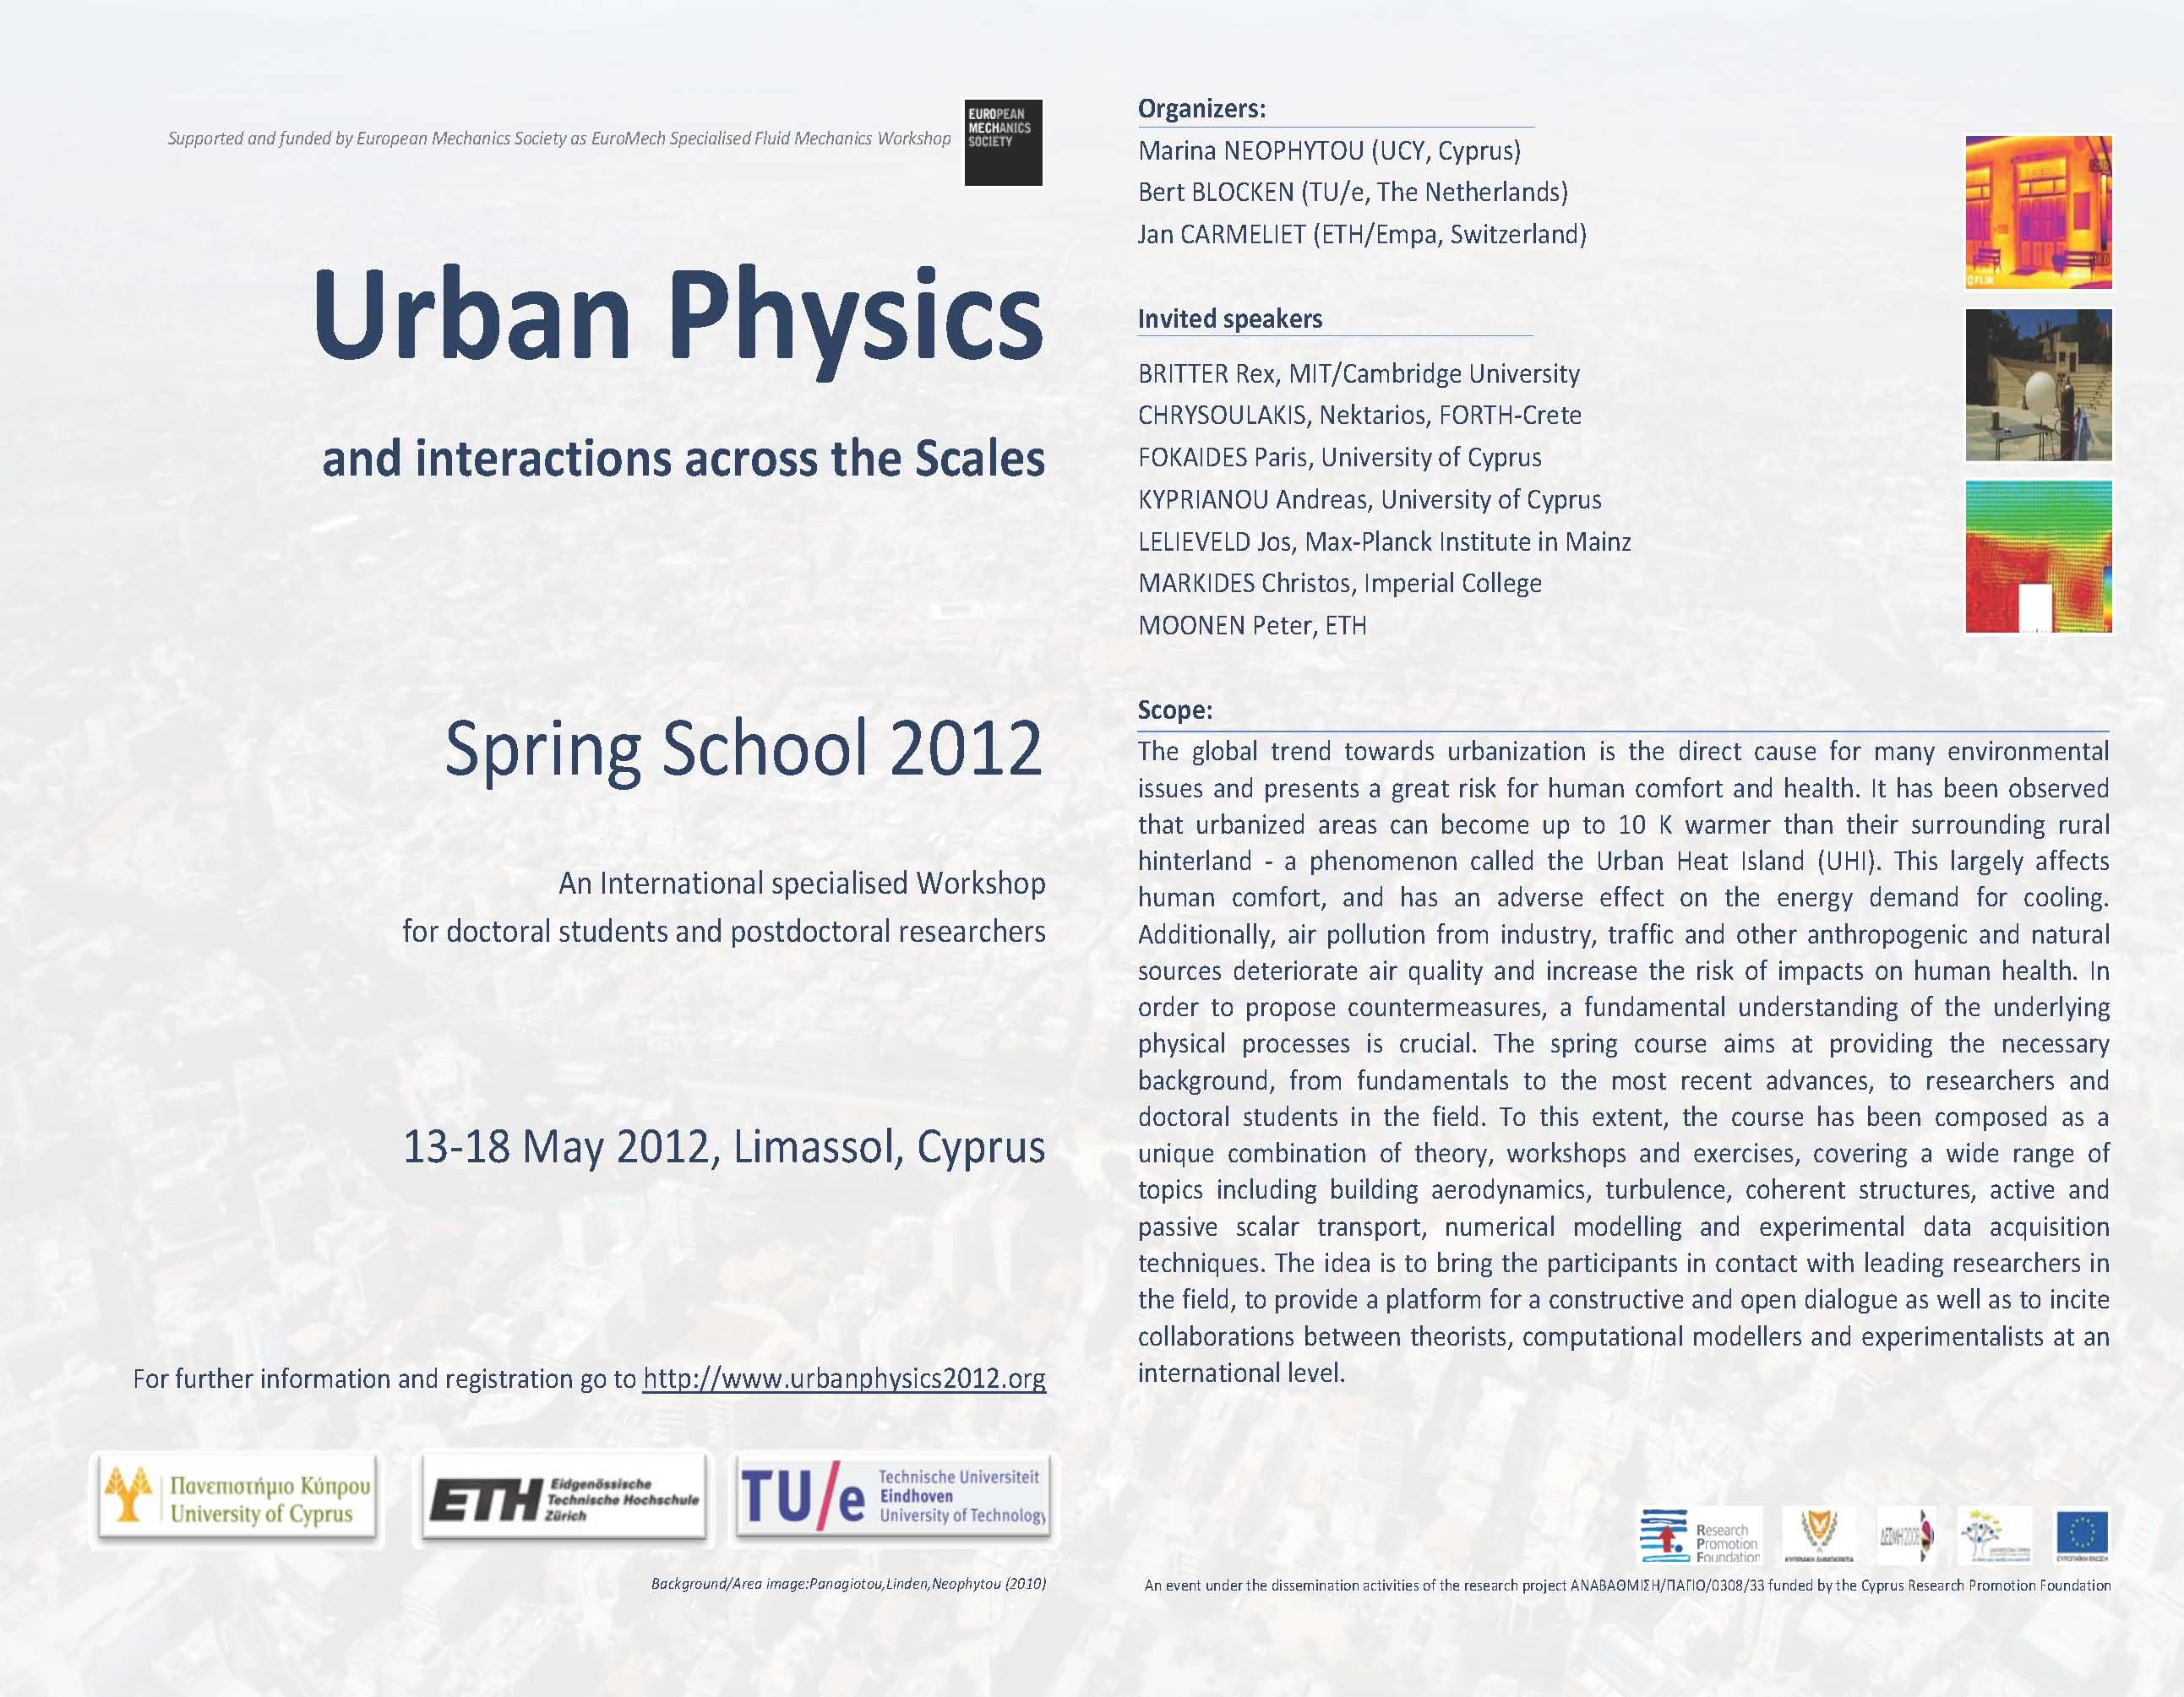 Urban Physics 2012